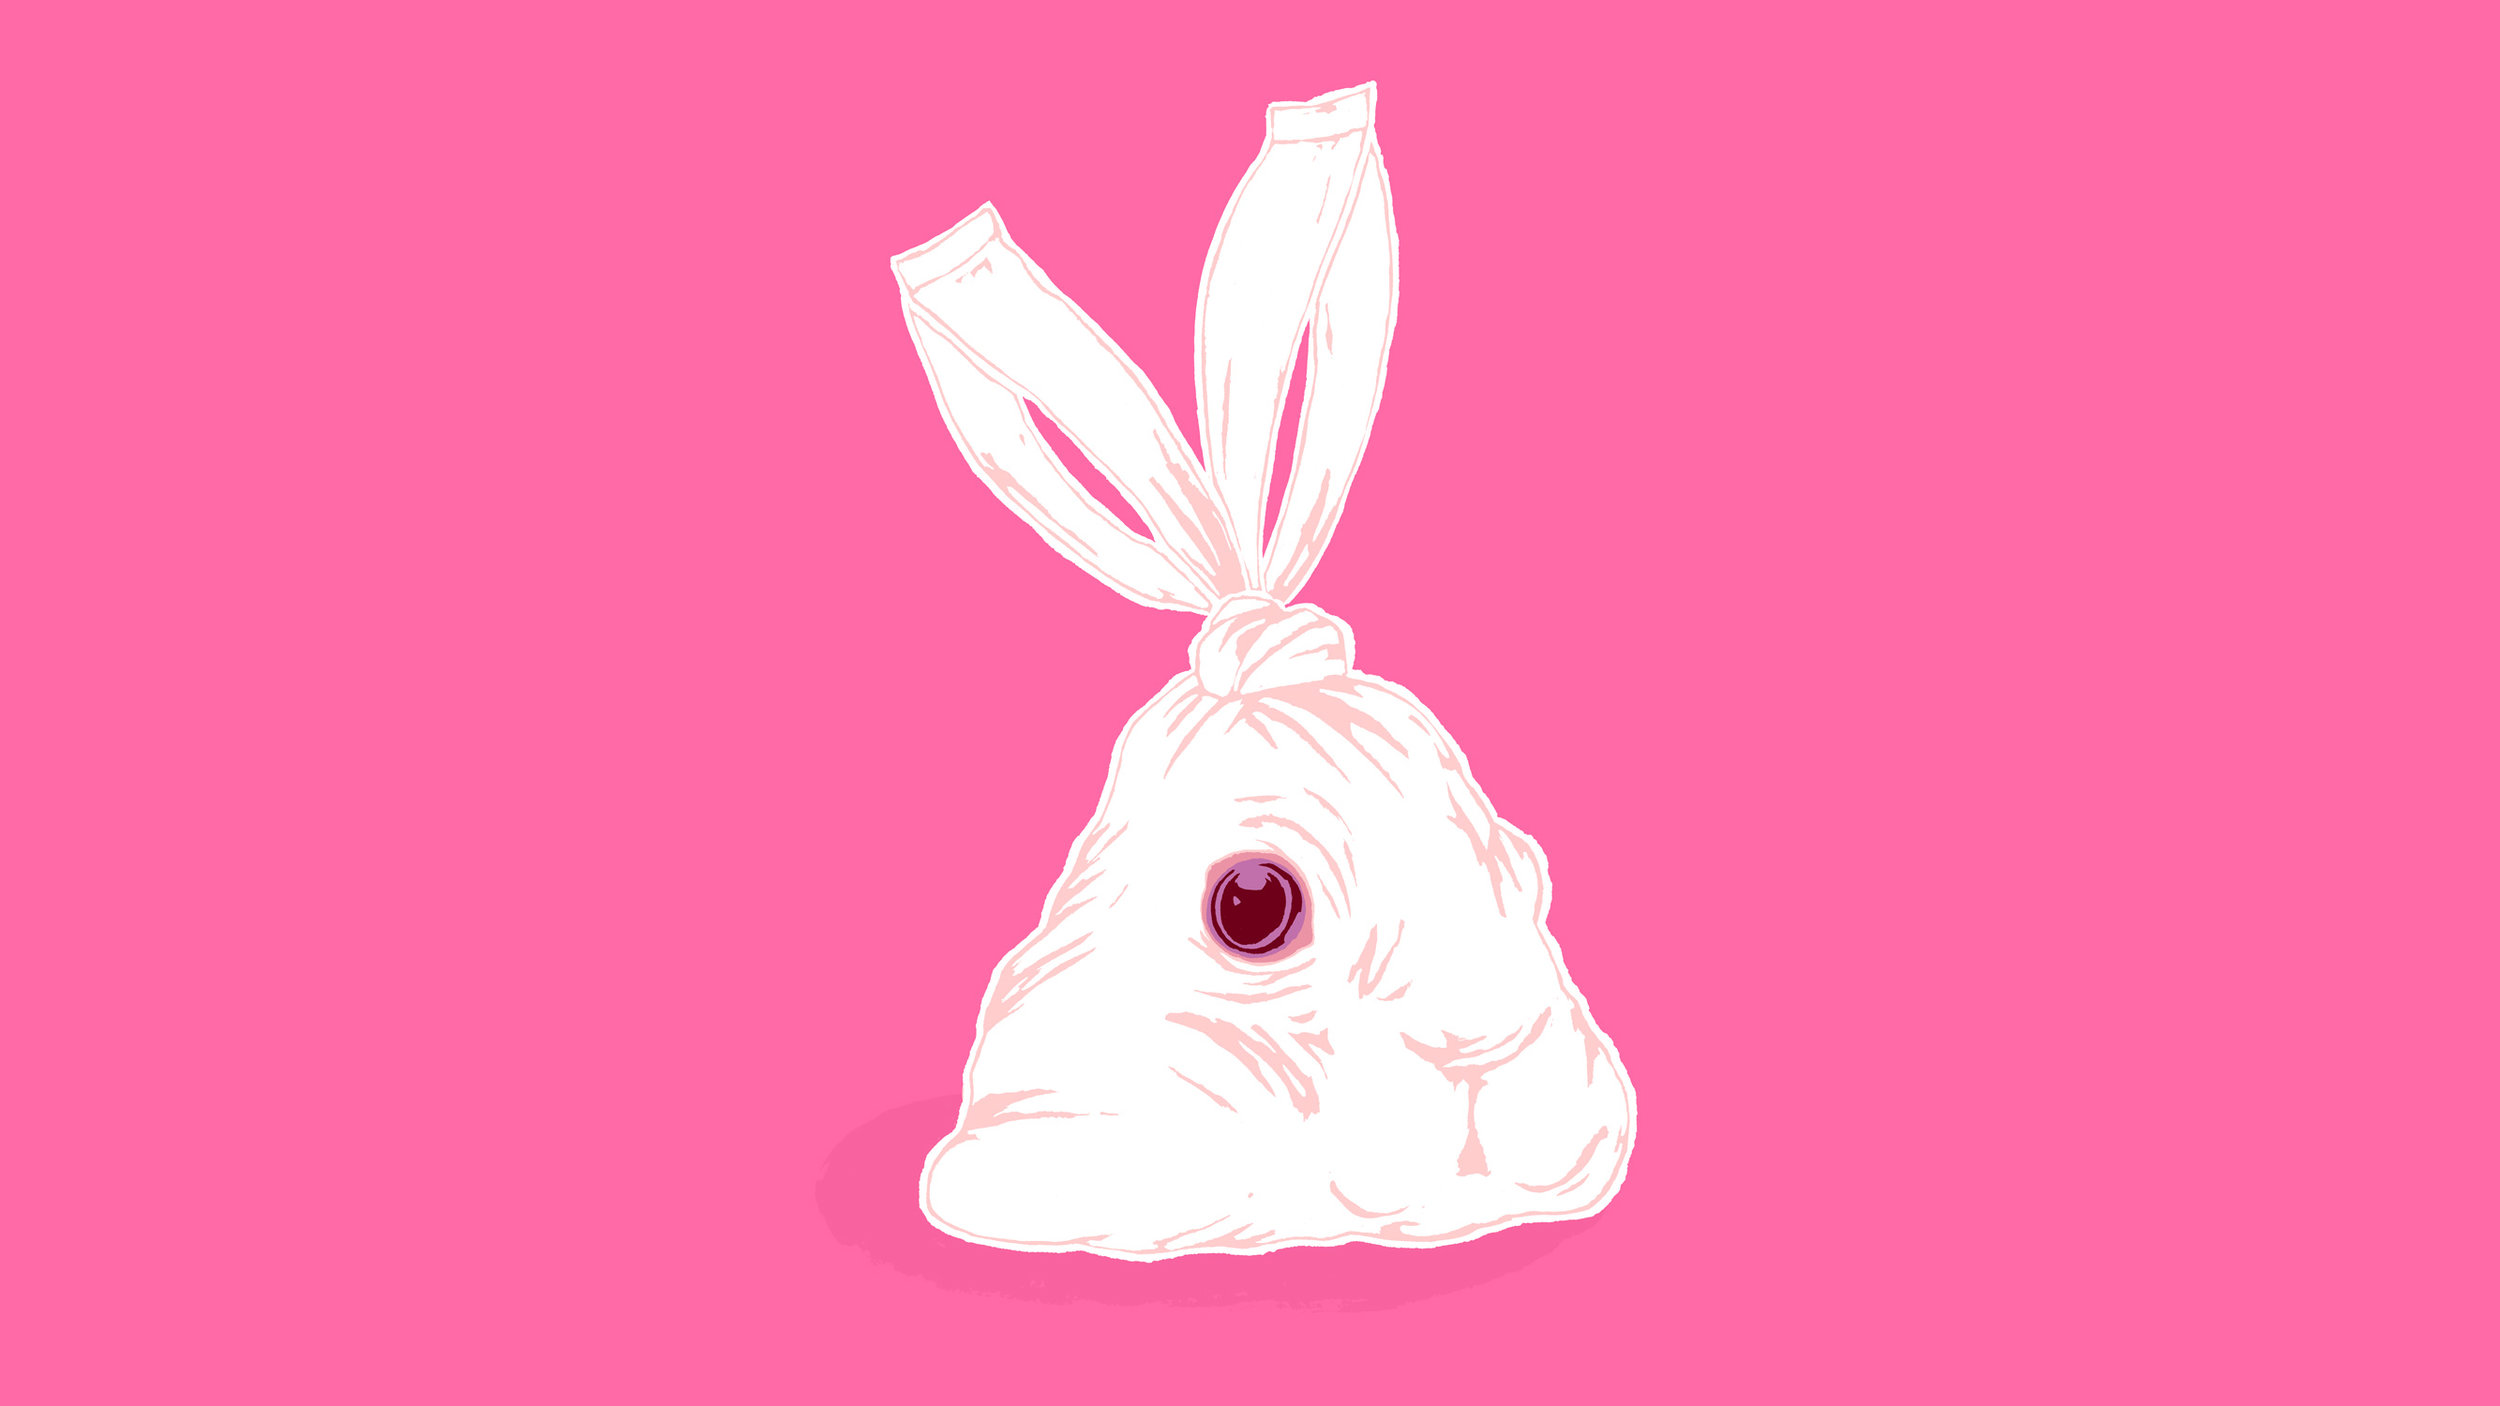 Trash - rabbit